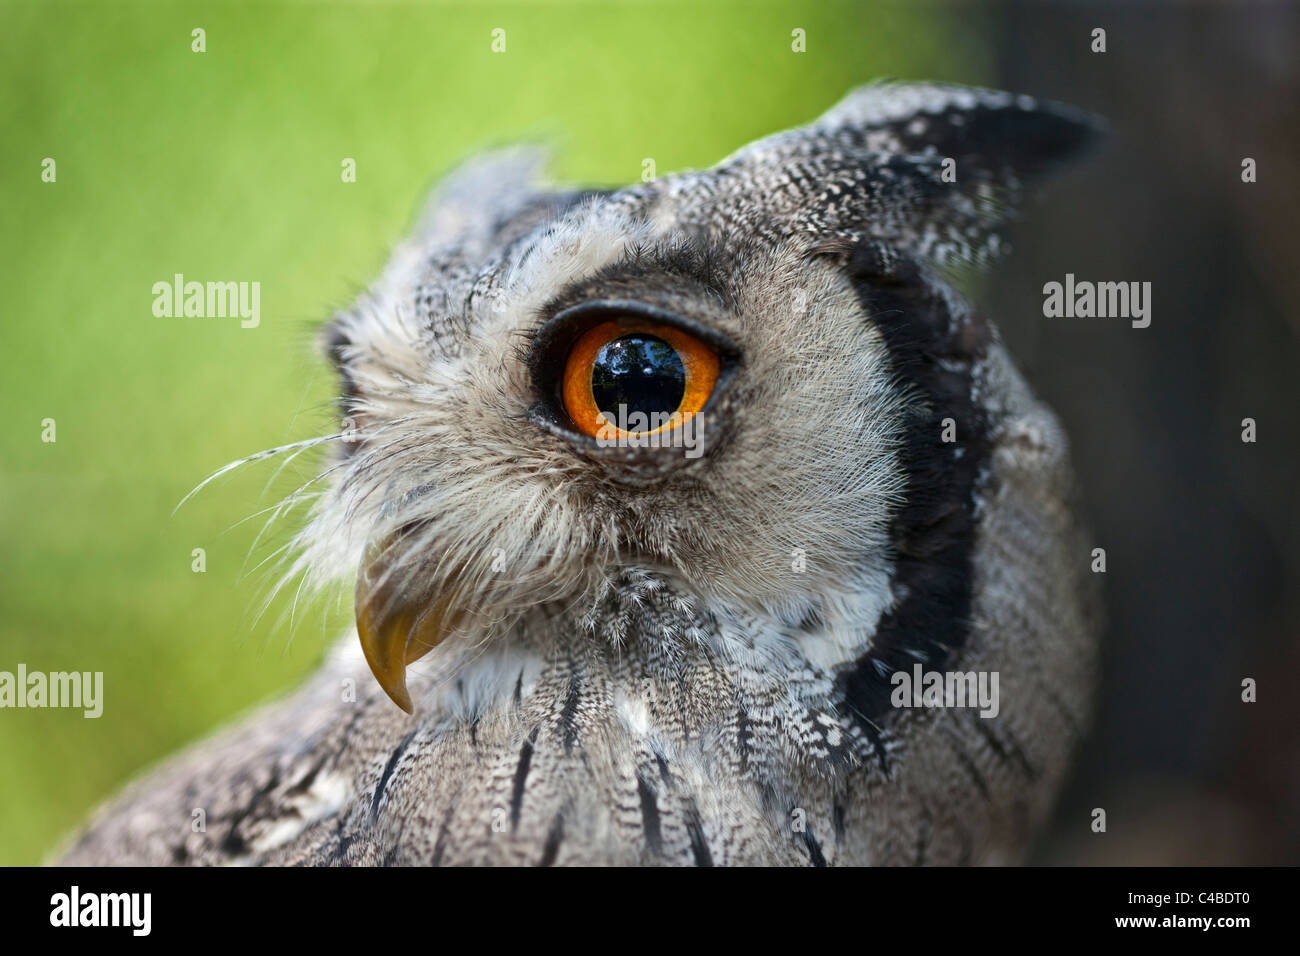 A portrait of a White-faced Scops-Owl, a species of small owl with ear tufts that are raised when the bird is disturbed. - Stock Image